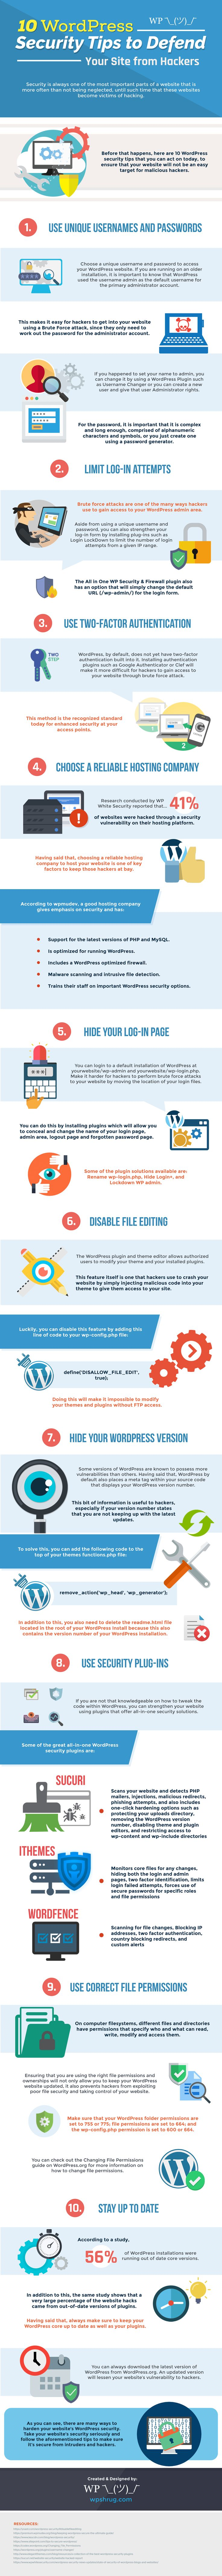 10 WordPress Security Tips to Defend Your Site from Hackers - #blogging